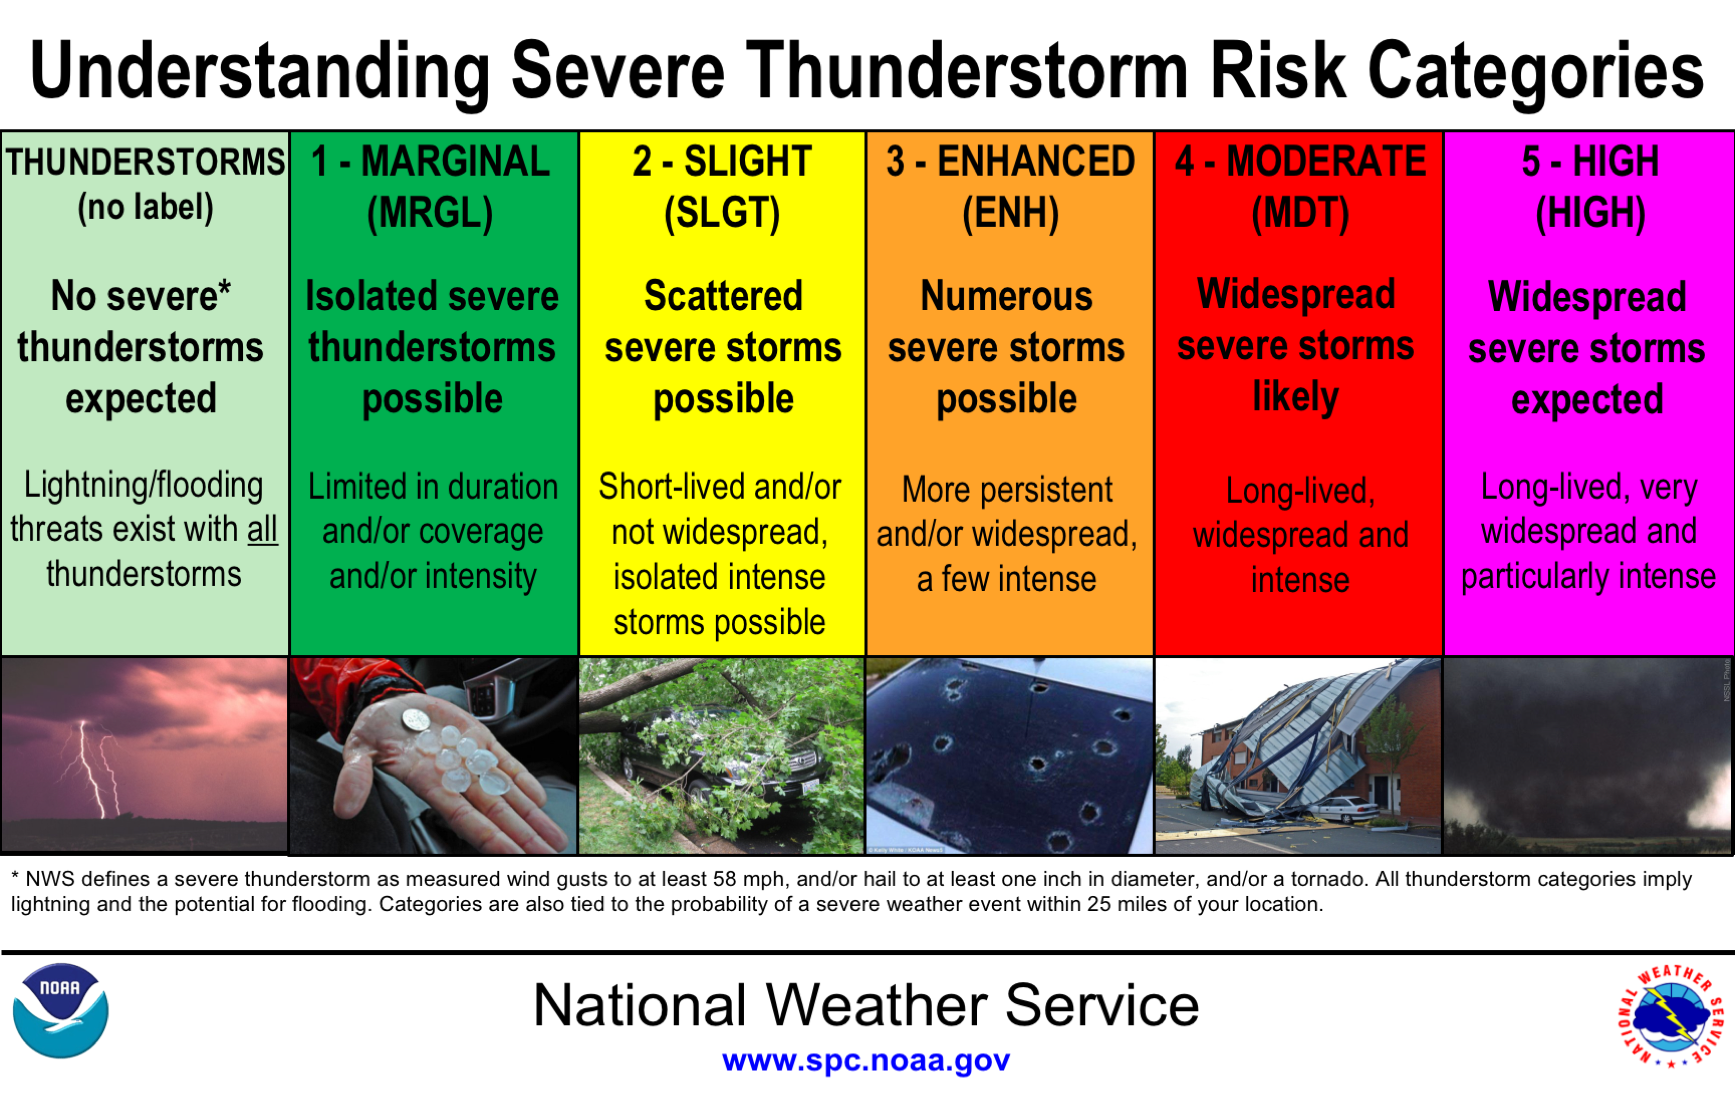 Convective Outlook Category Descritions